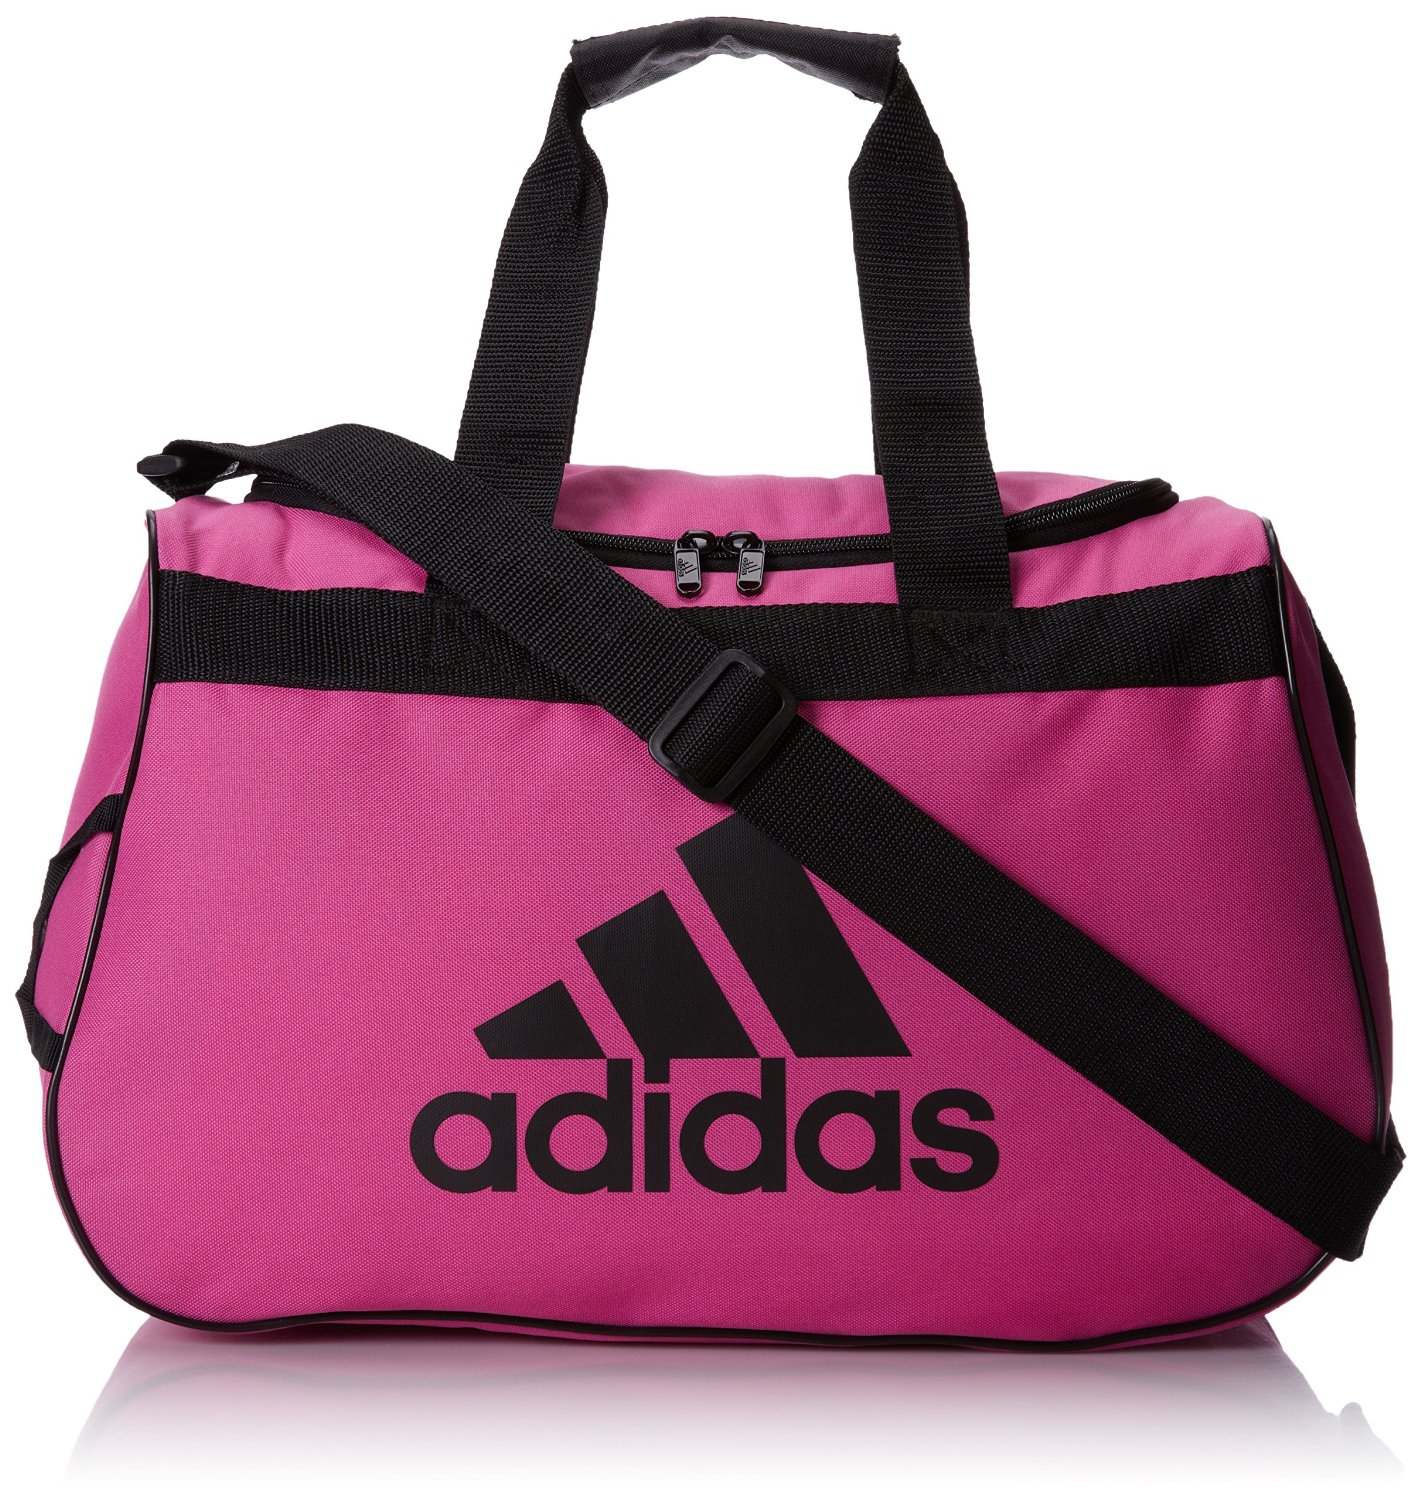 Simple 16 Cute Gym Bags For Women | StayGlam